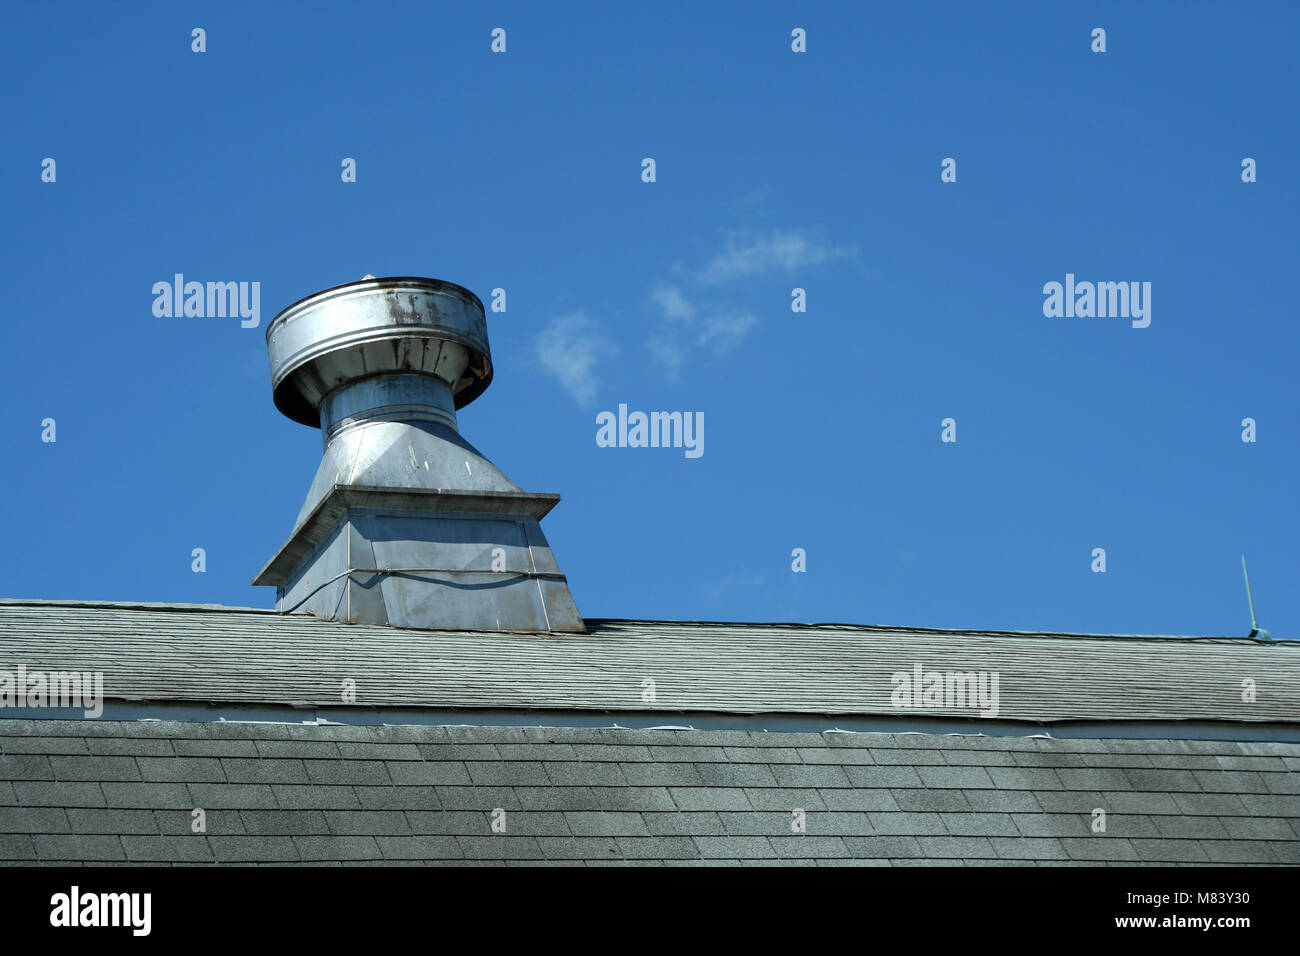 Roof Vent Stock Photos & Roof Vent Stock Images - Alamy